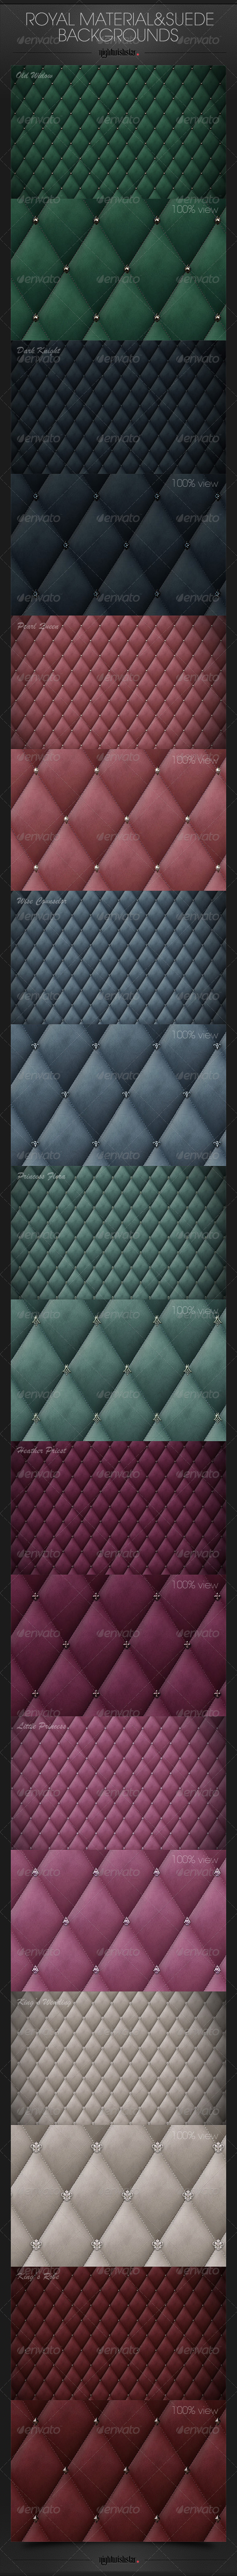 GraphicRiver Royal Material & Suede Backgrounds 6514079